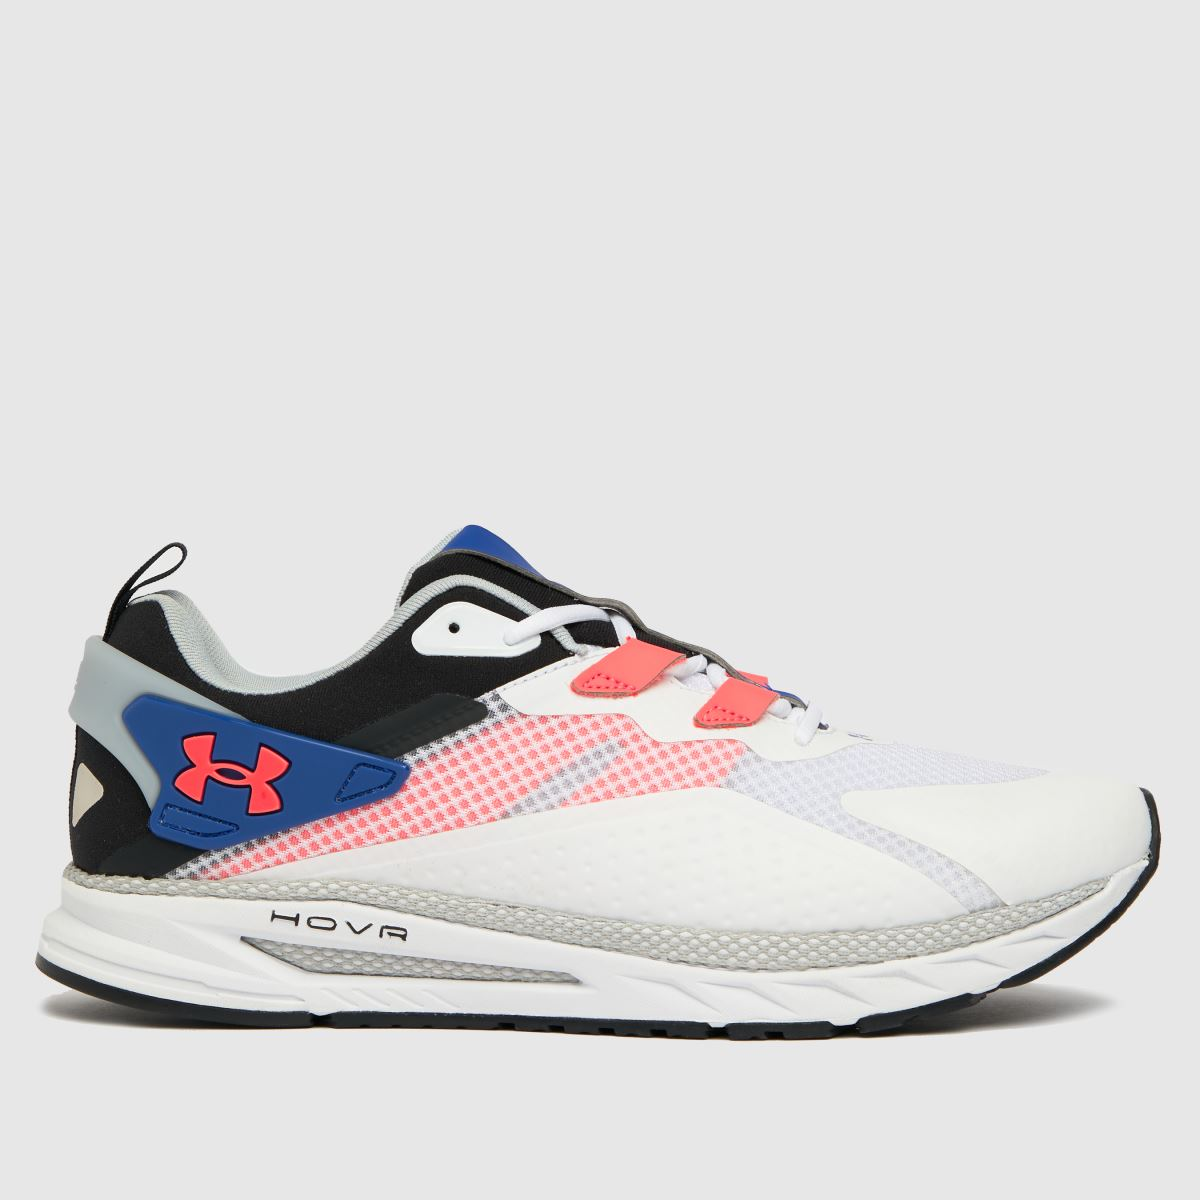 Under Armour White & Pl Blue Hovr Flux Mvmnt Trainers